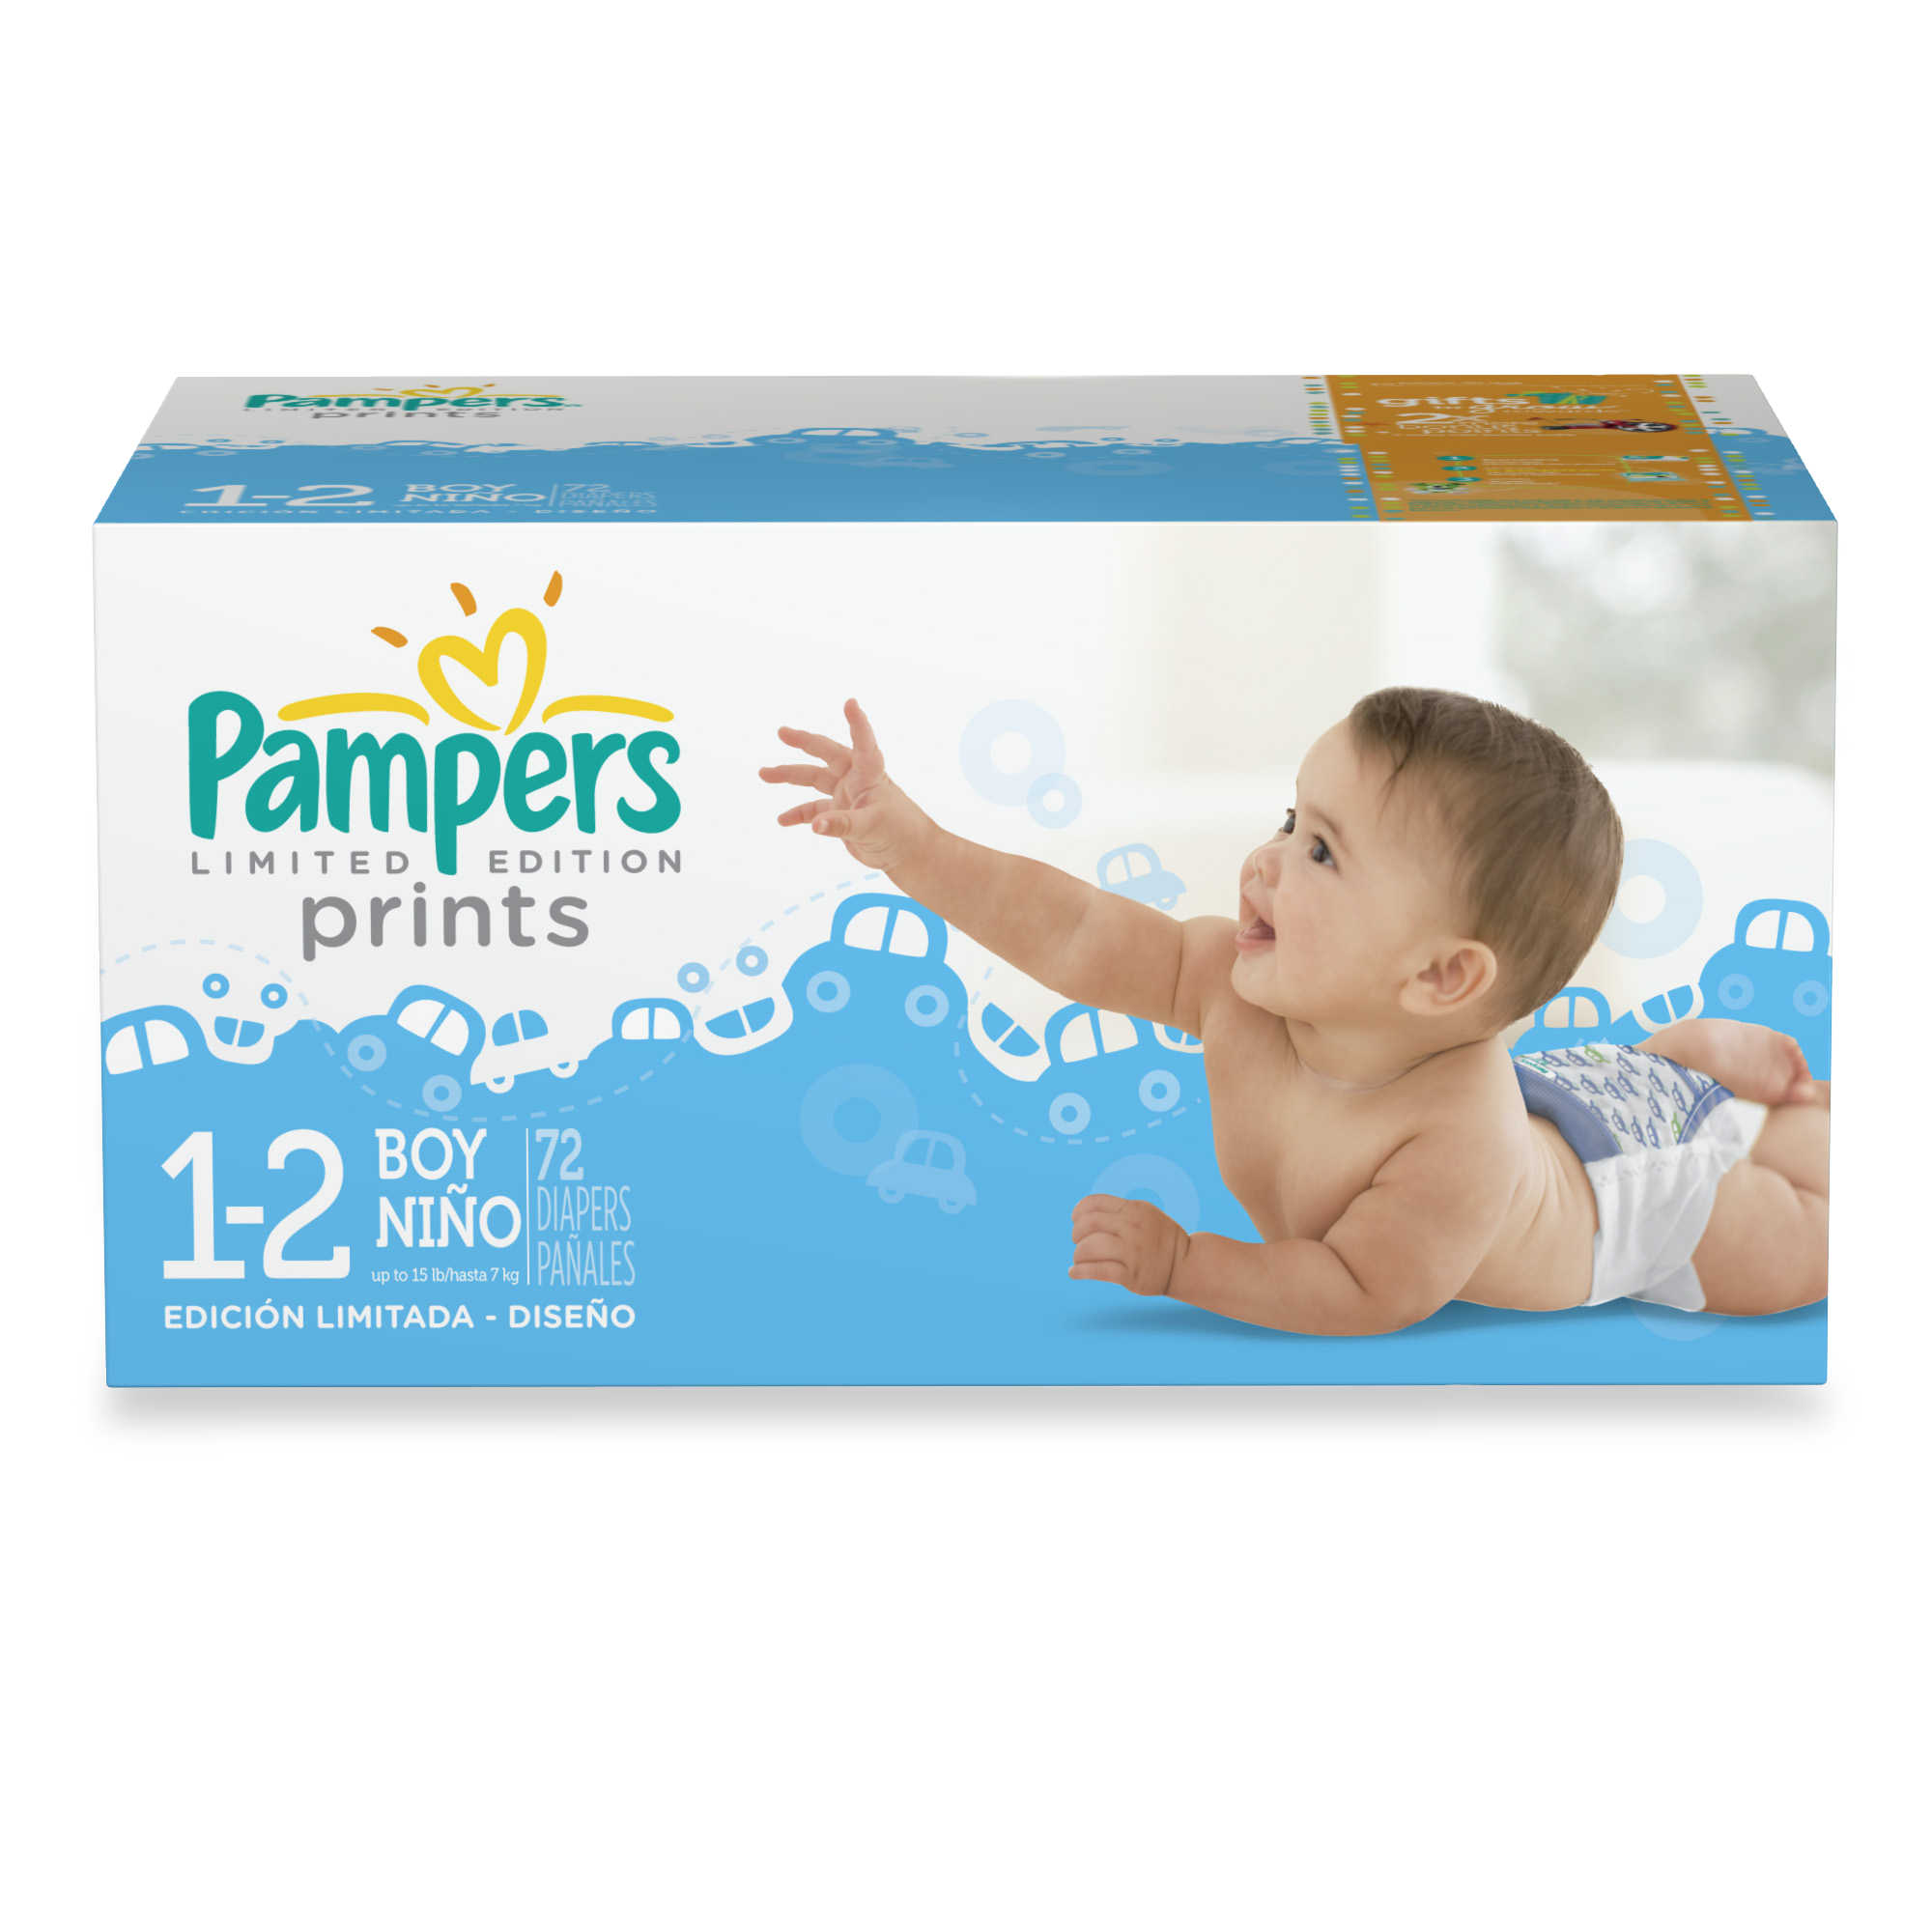 Pampers® 72-Count Size 1/2 Limited Edition Print Diapers for Boys ...